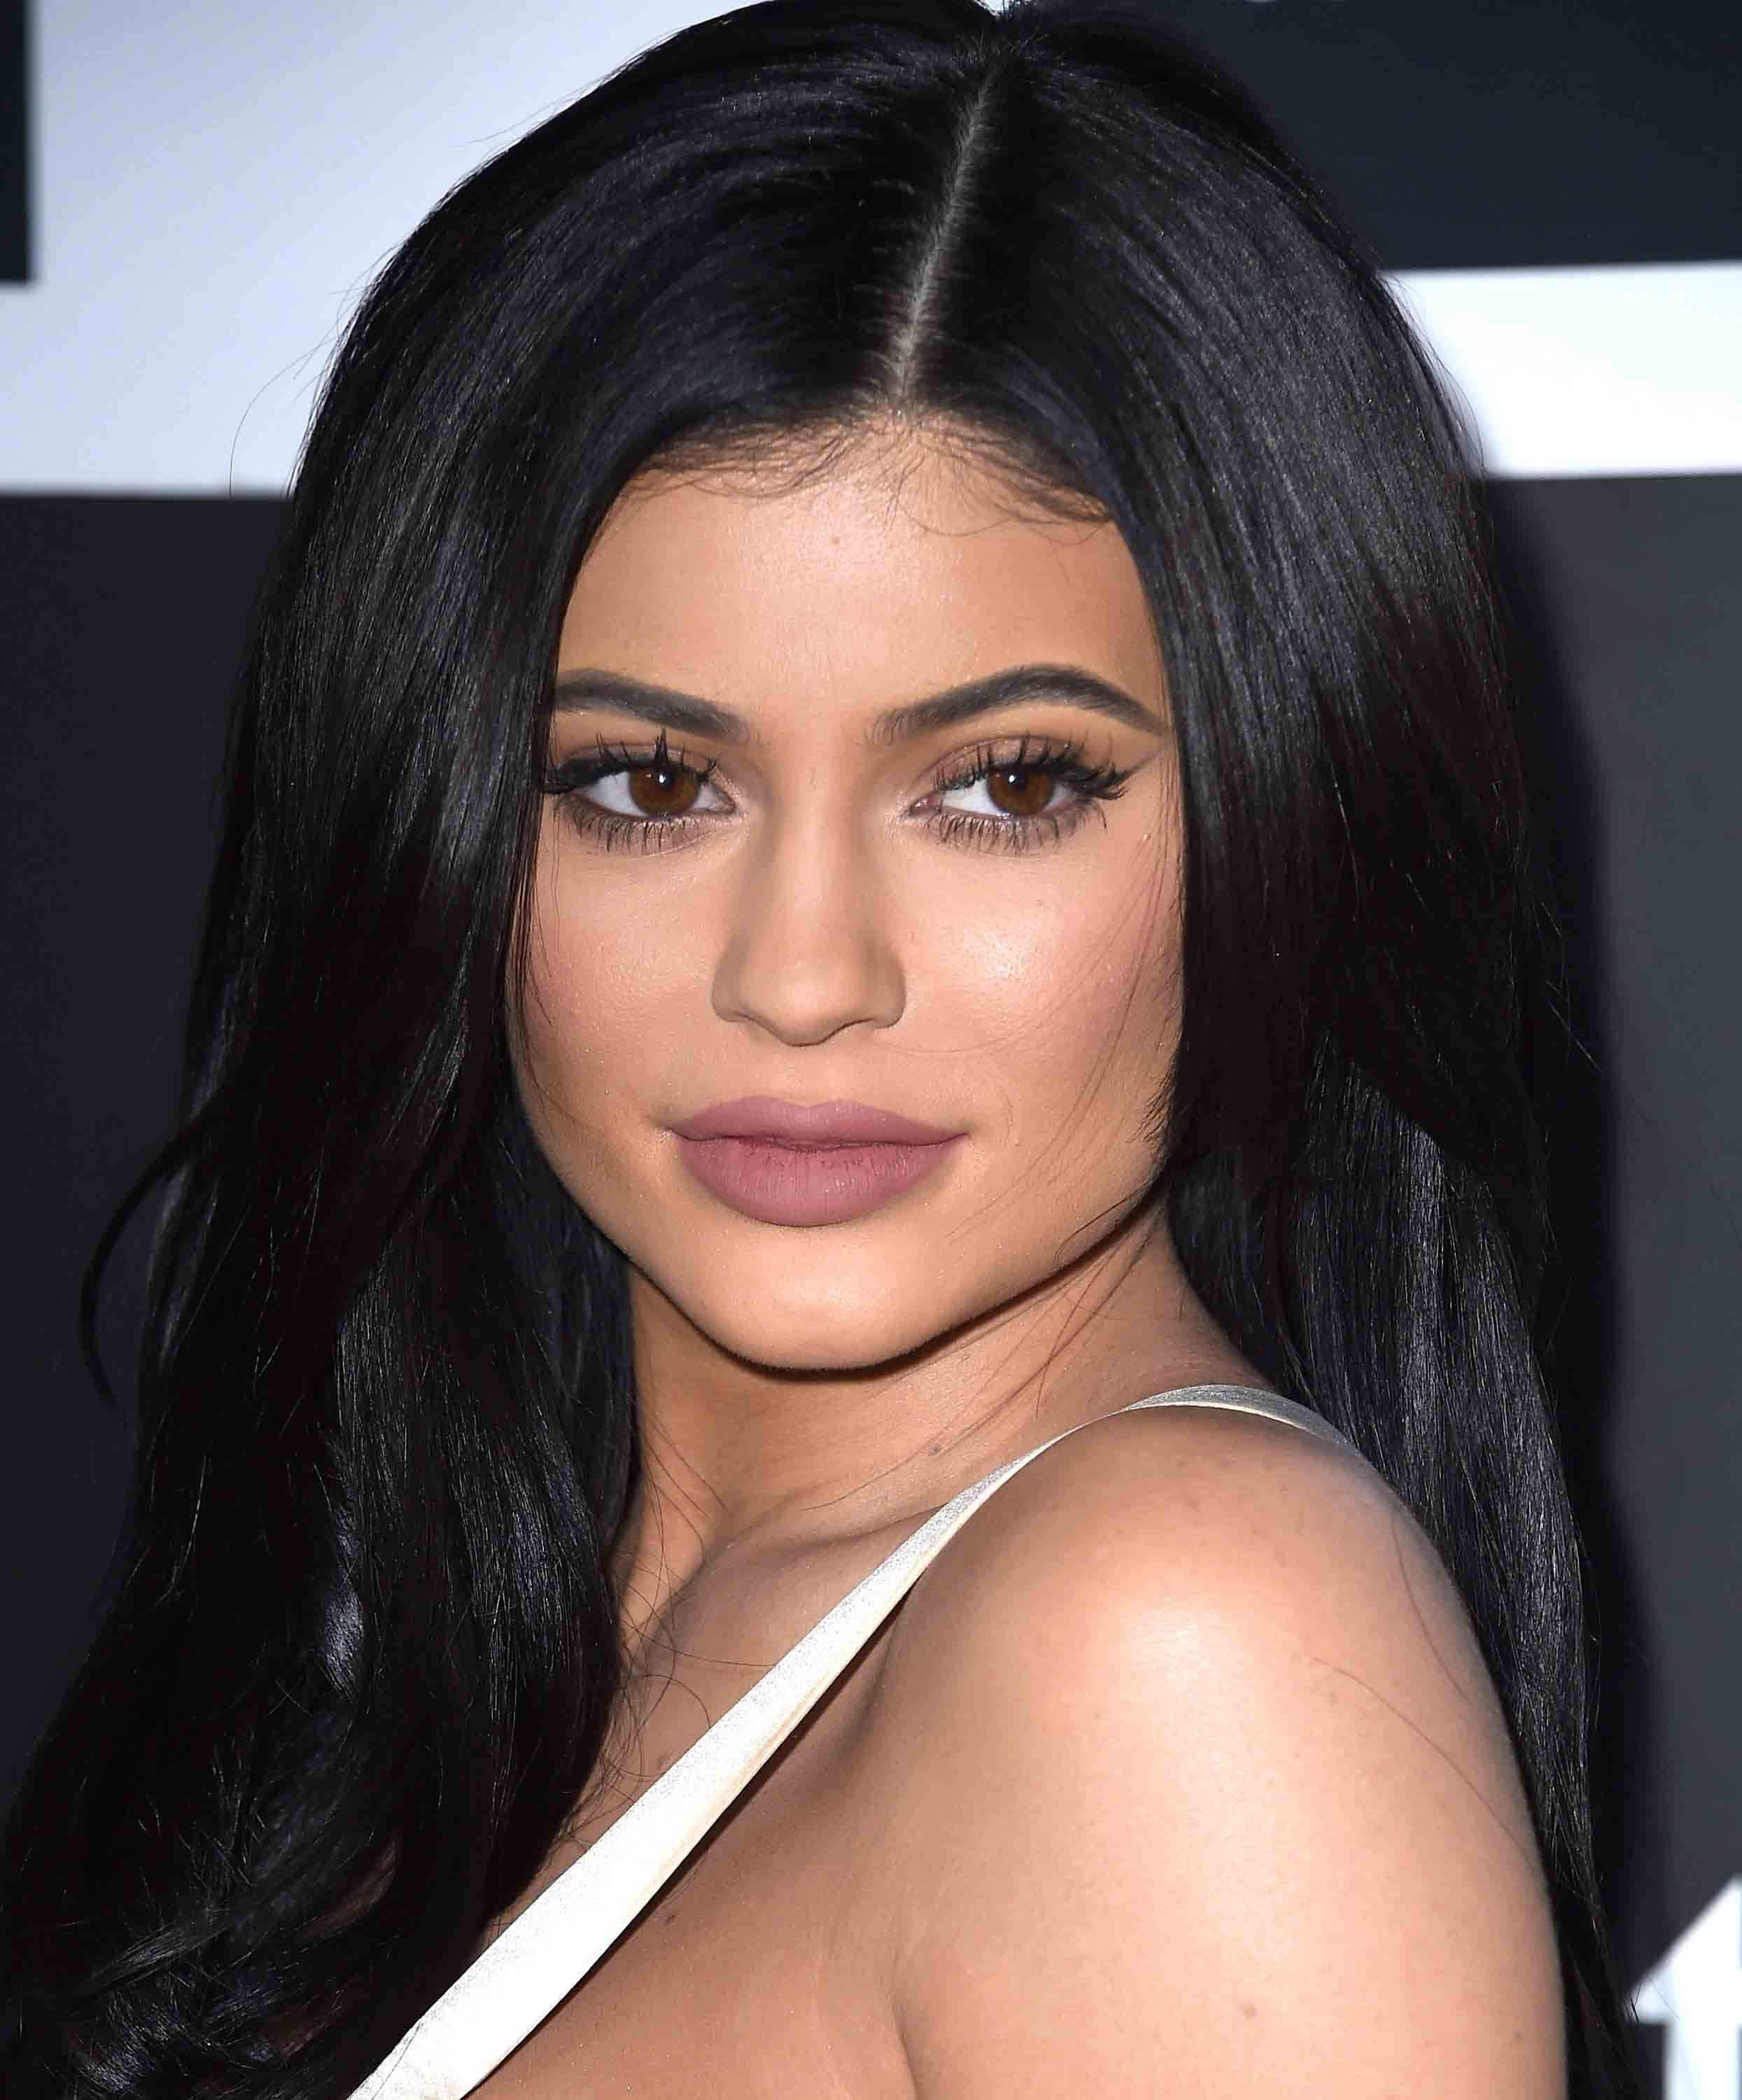 Forum on this topic: Kylie Jenners lips beauty mistake, kylie-jenners-lips-beauty-mistake/